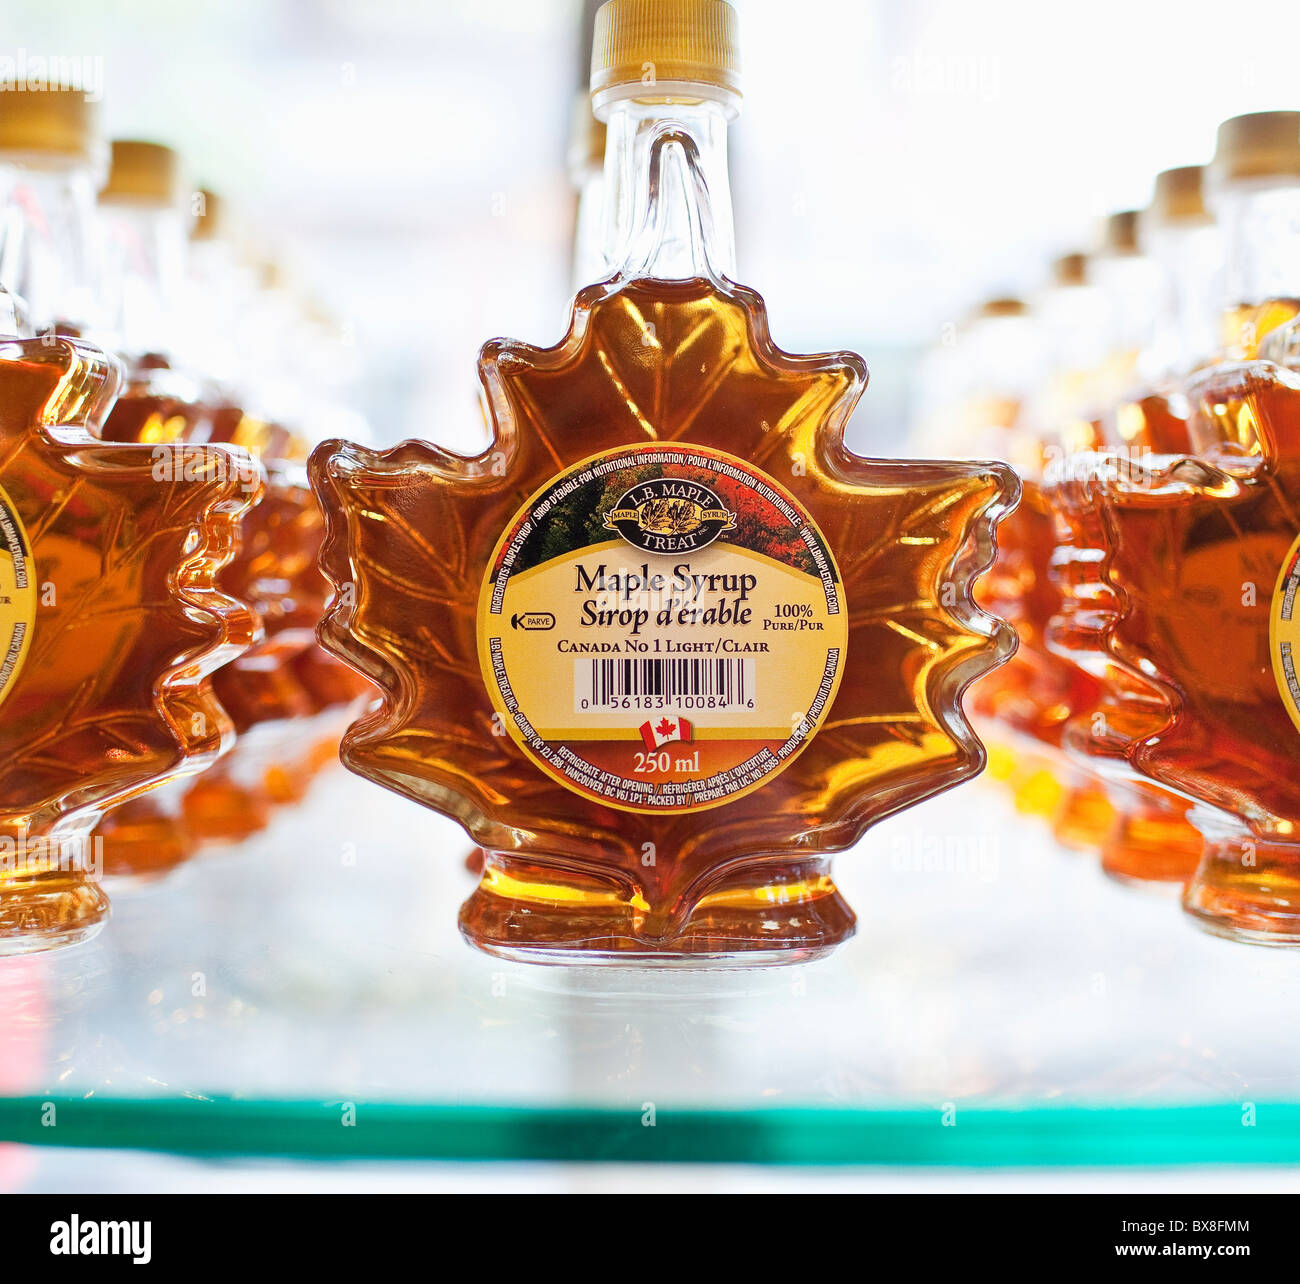 Canadian Maple Syrup in glass bottles. - Stock Image